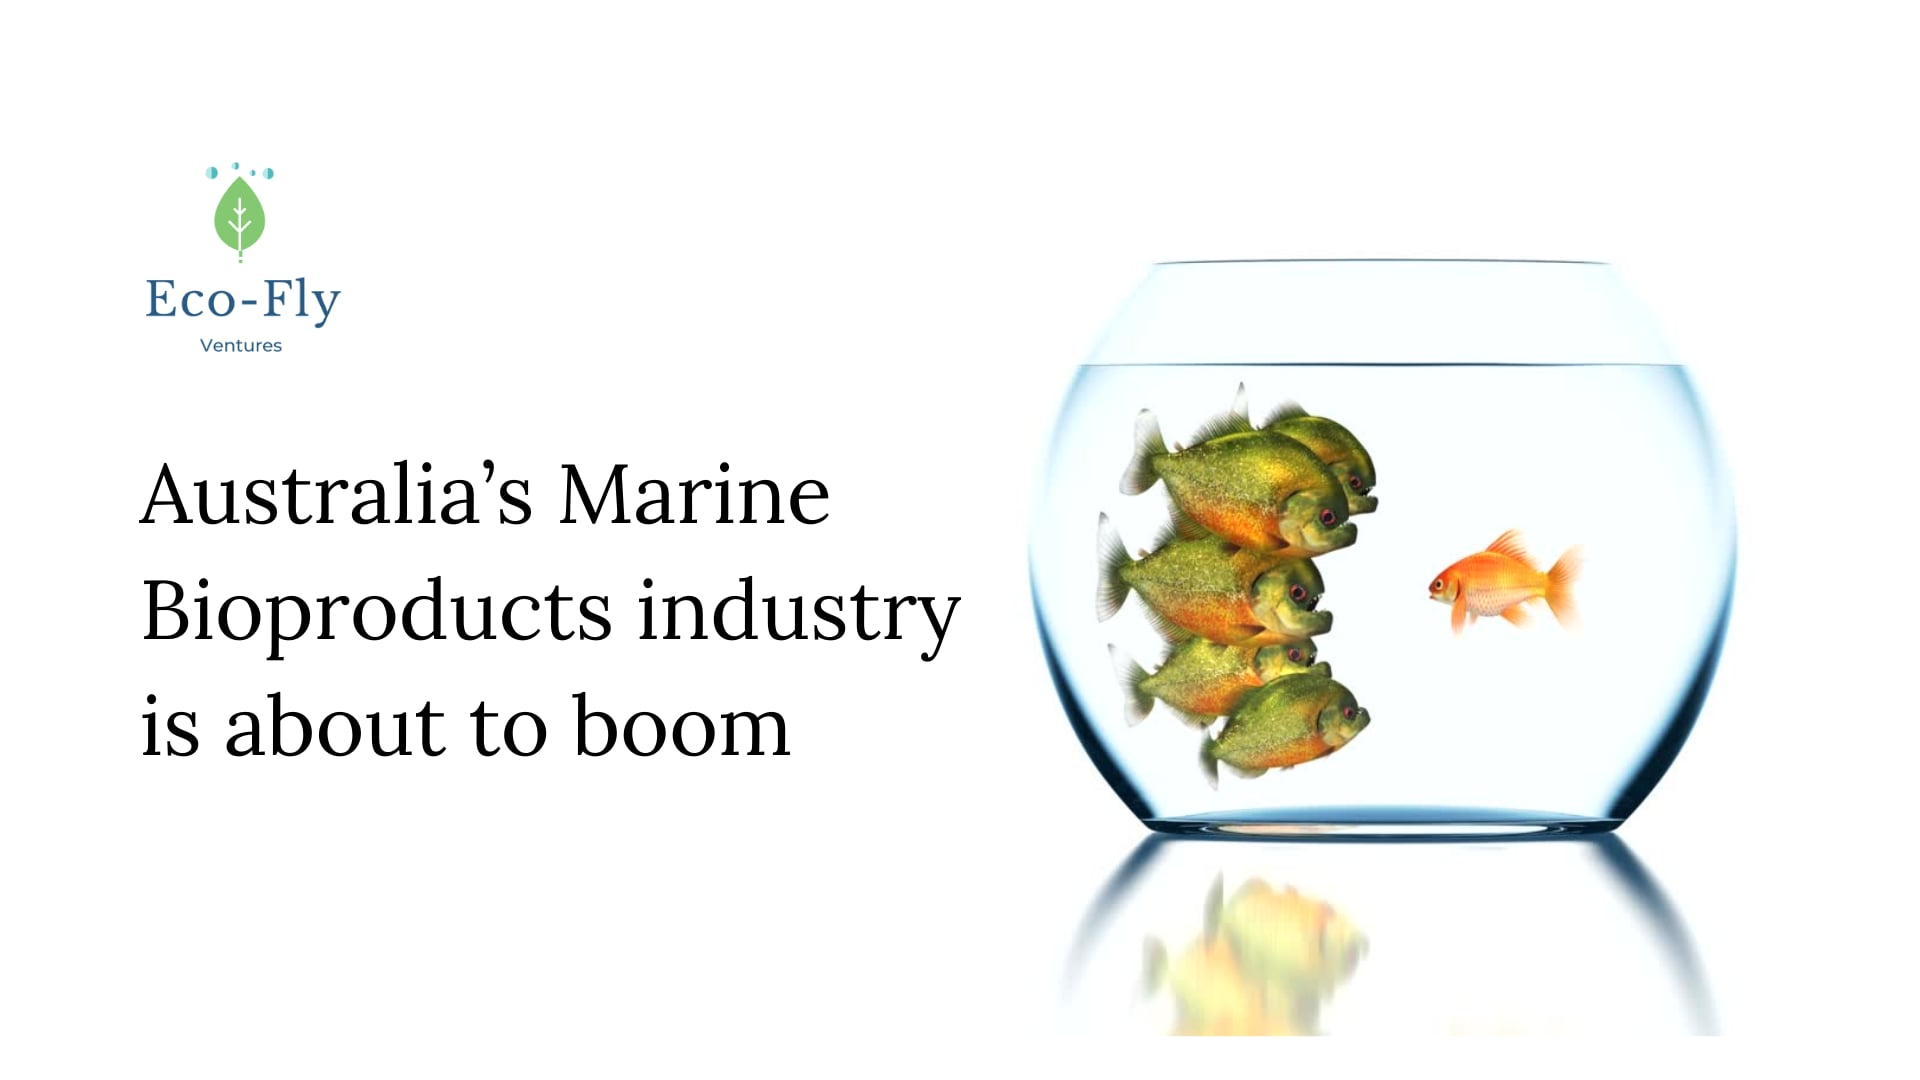 The Australian marine bioproducts industry is about to boom